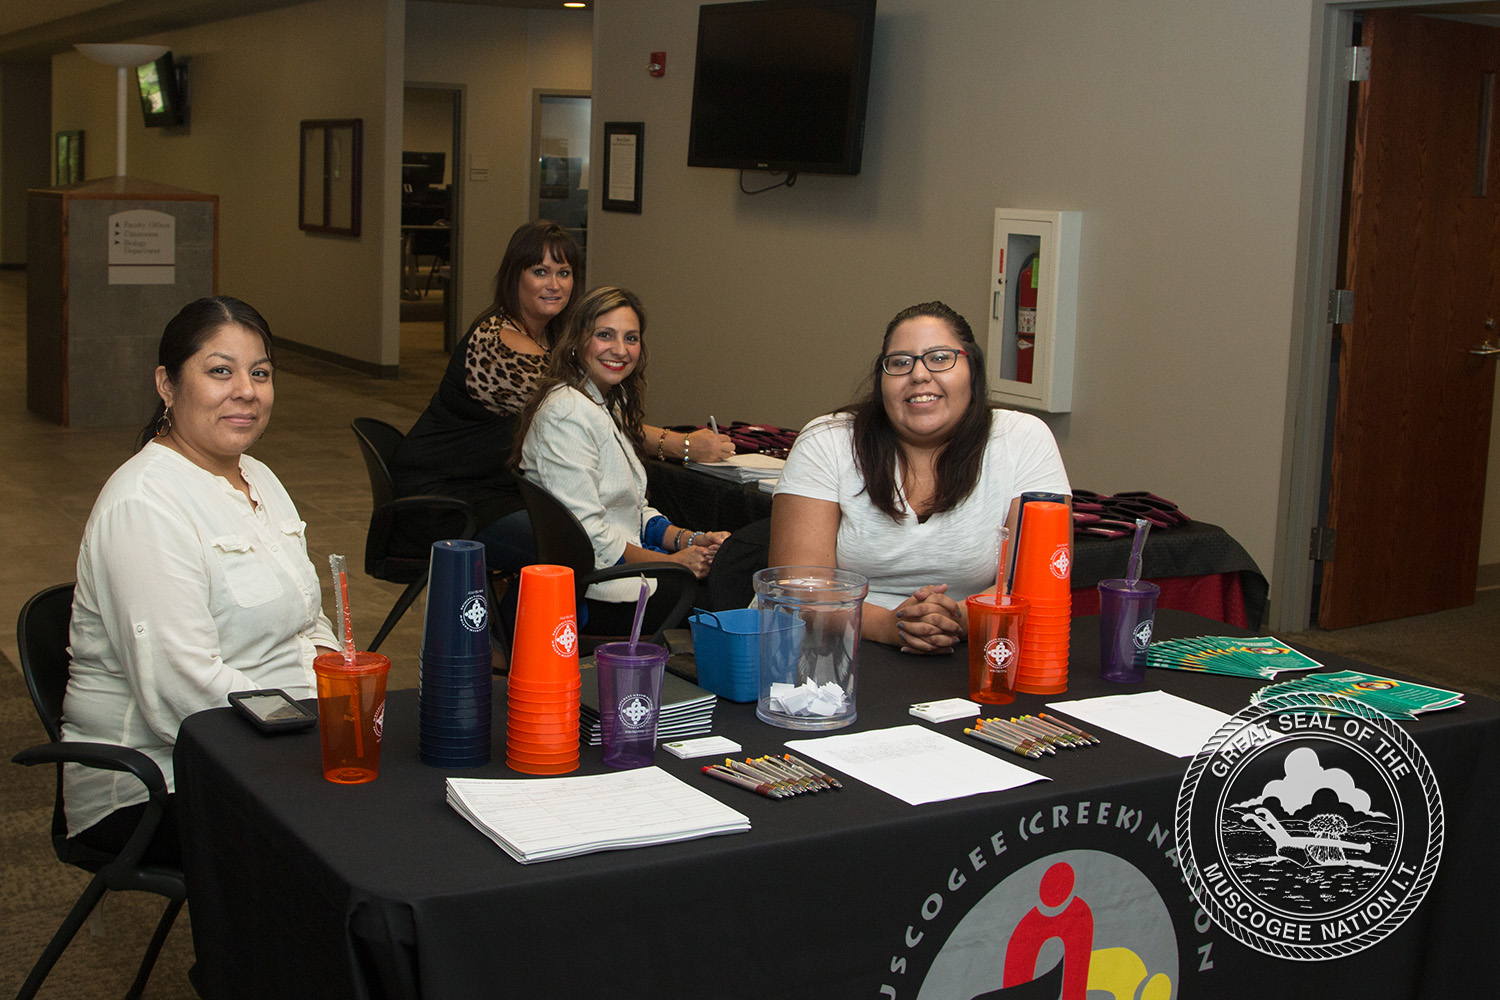 Muscogee (Creek) Nation partners with Dynamic Recruiting Specialists to find jobs with SeneGence International